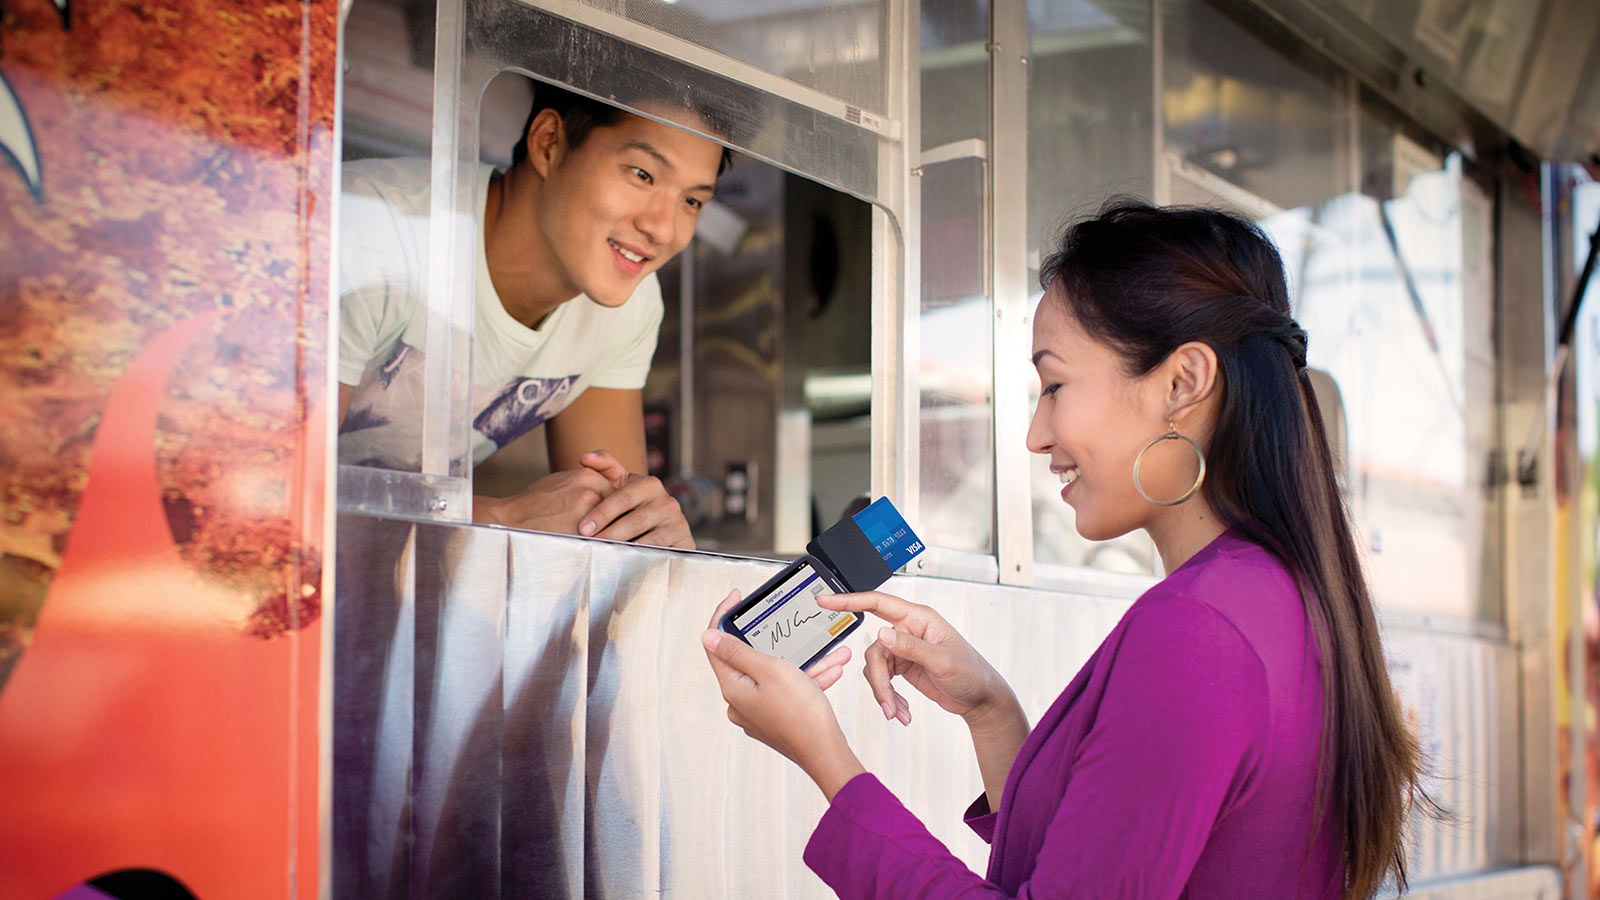 Woman using a mobile card reader to make purchase at food truck.